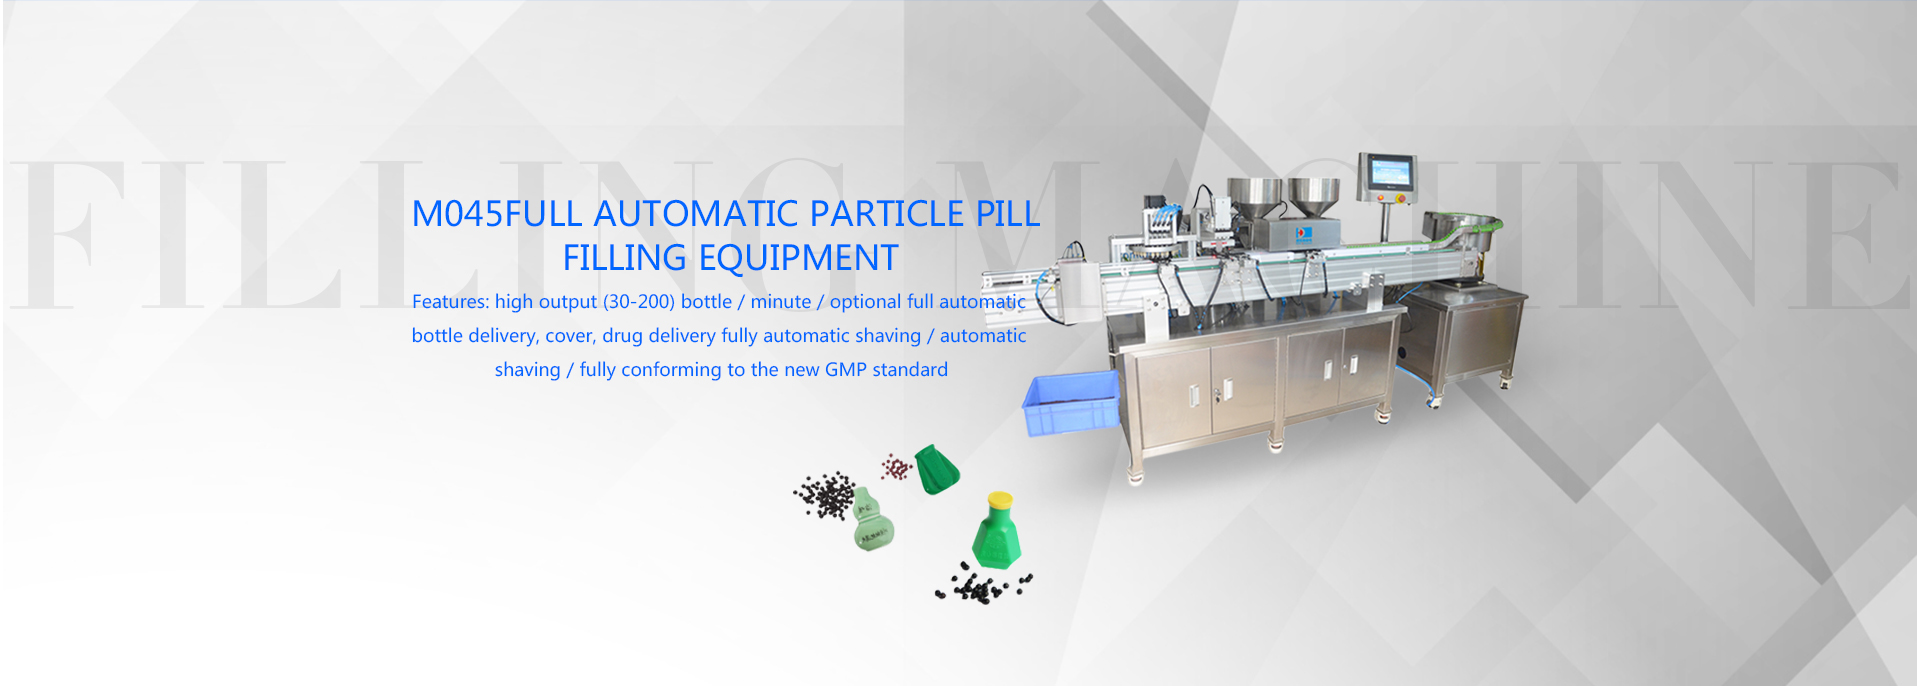 Pill filling machine